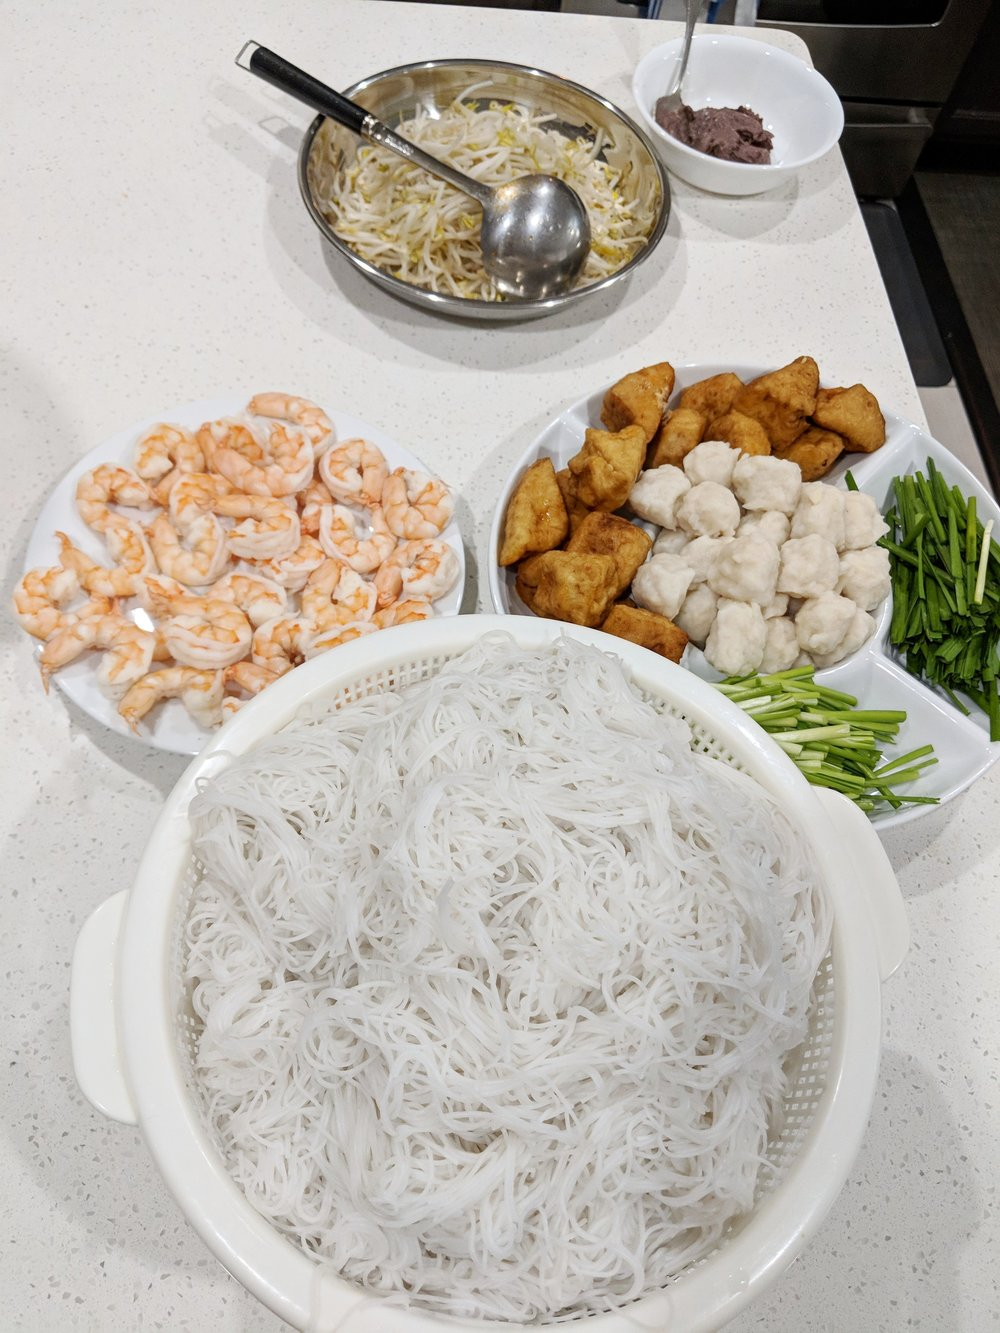 Sample photo of all prepped ingredients in anticipation for the soup bowls